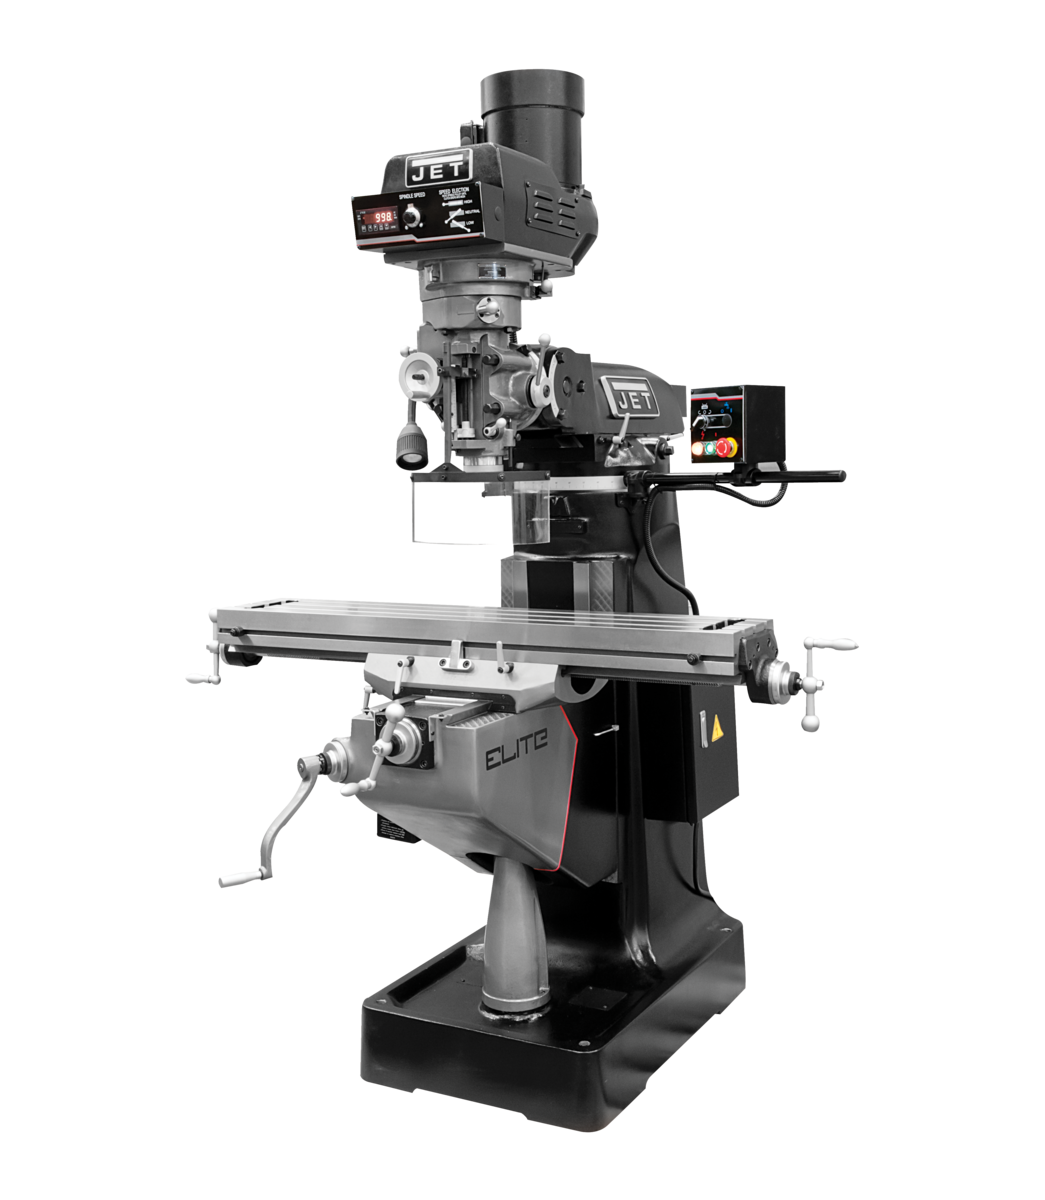 EVS-949 Mill with 3-Axis ACU-RITE 203 (Quill) DRO and Servo X-Axis Powerfeed and USA Air Powered Draw Bar